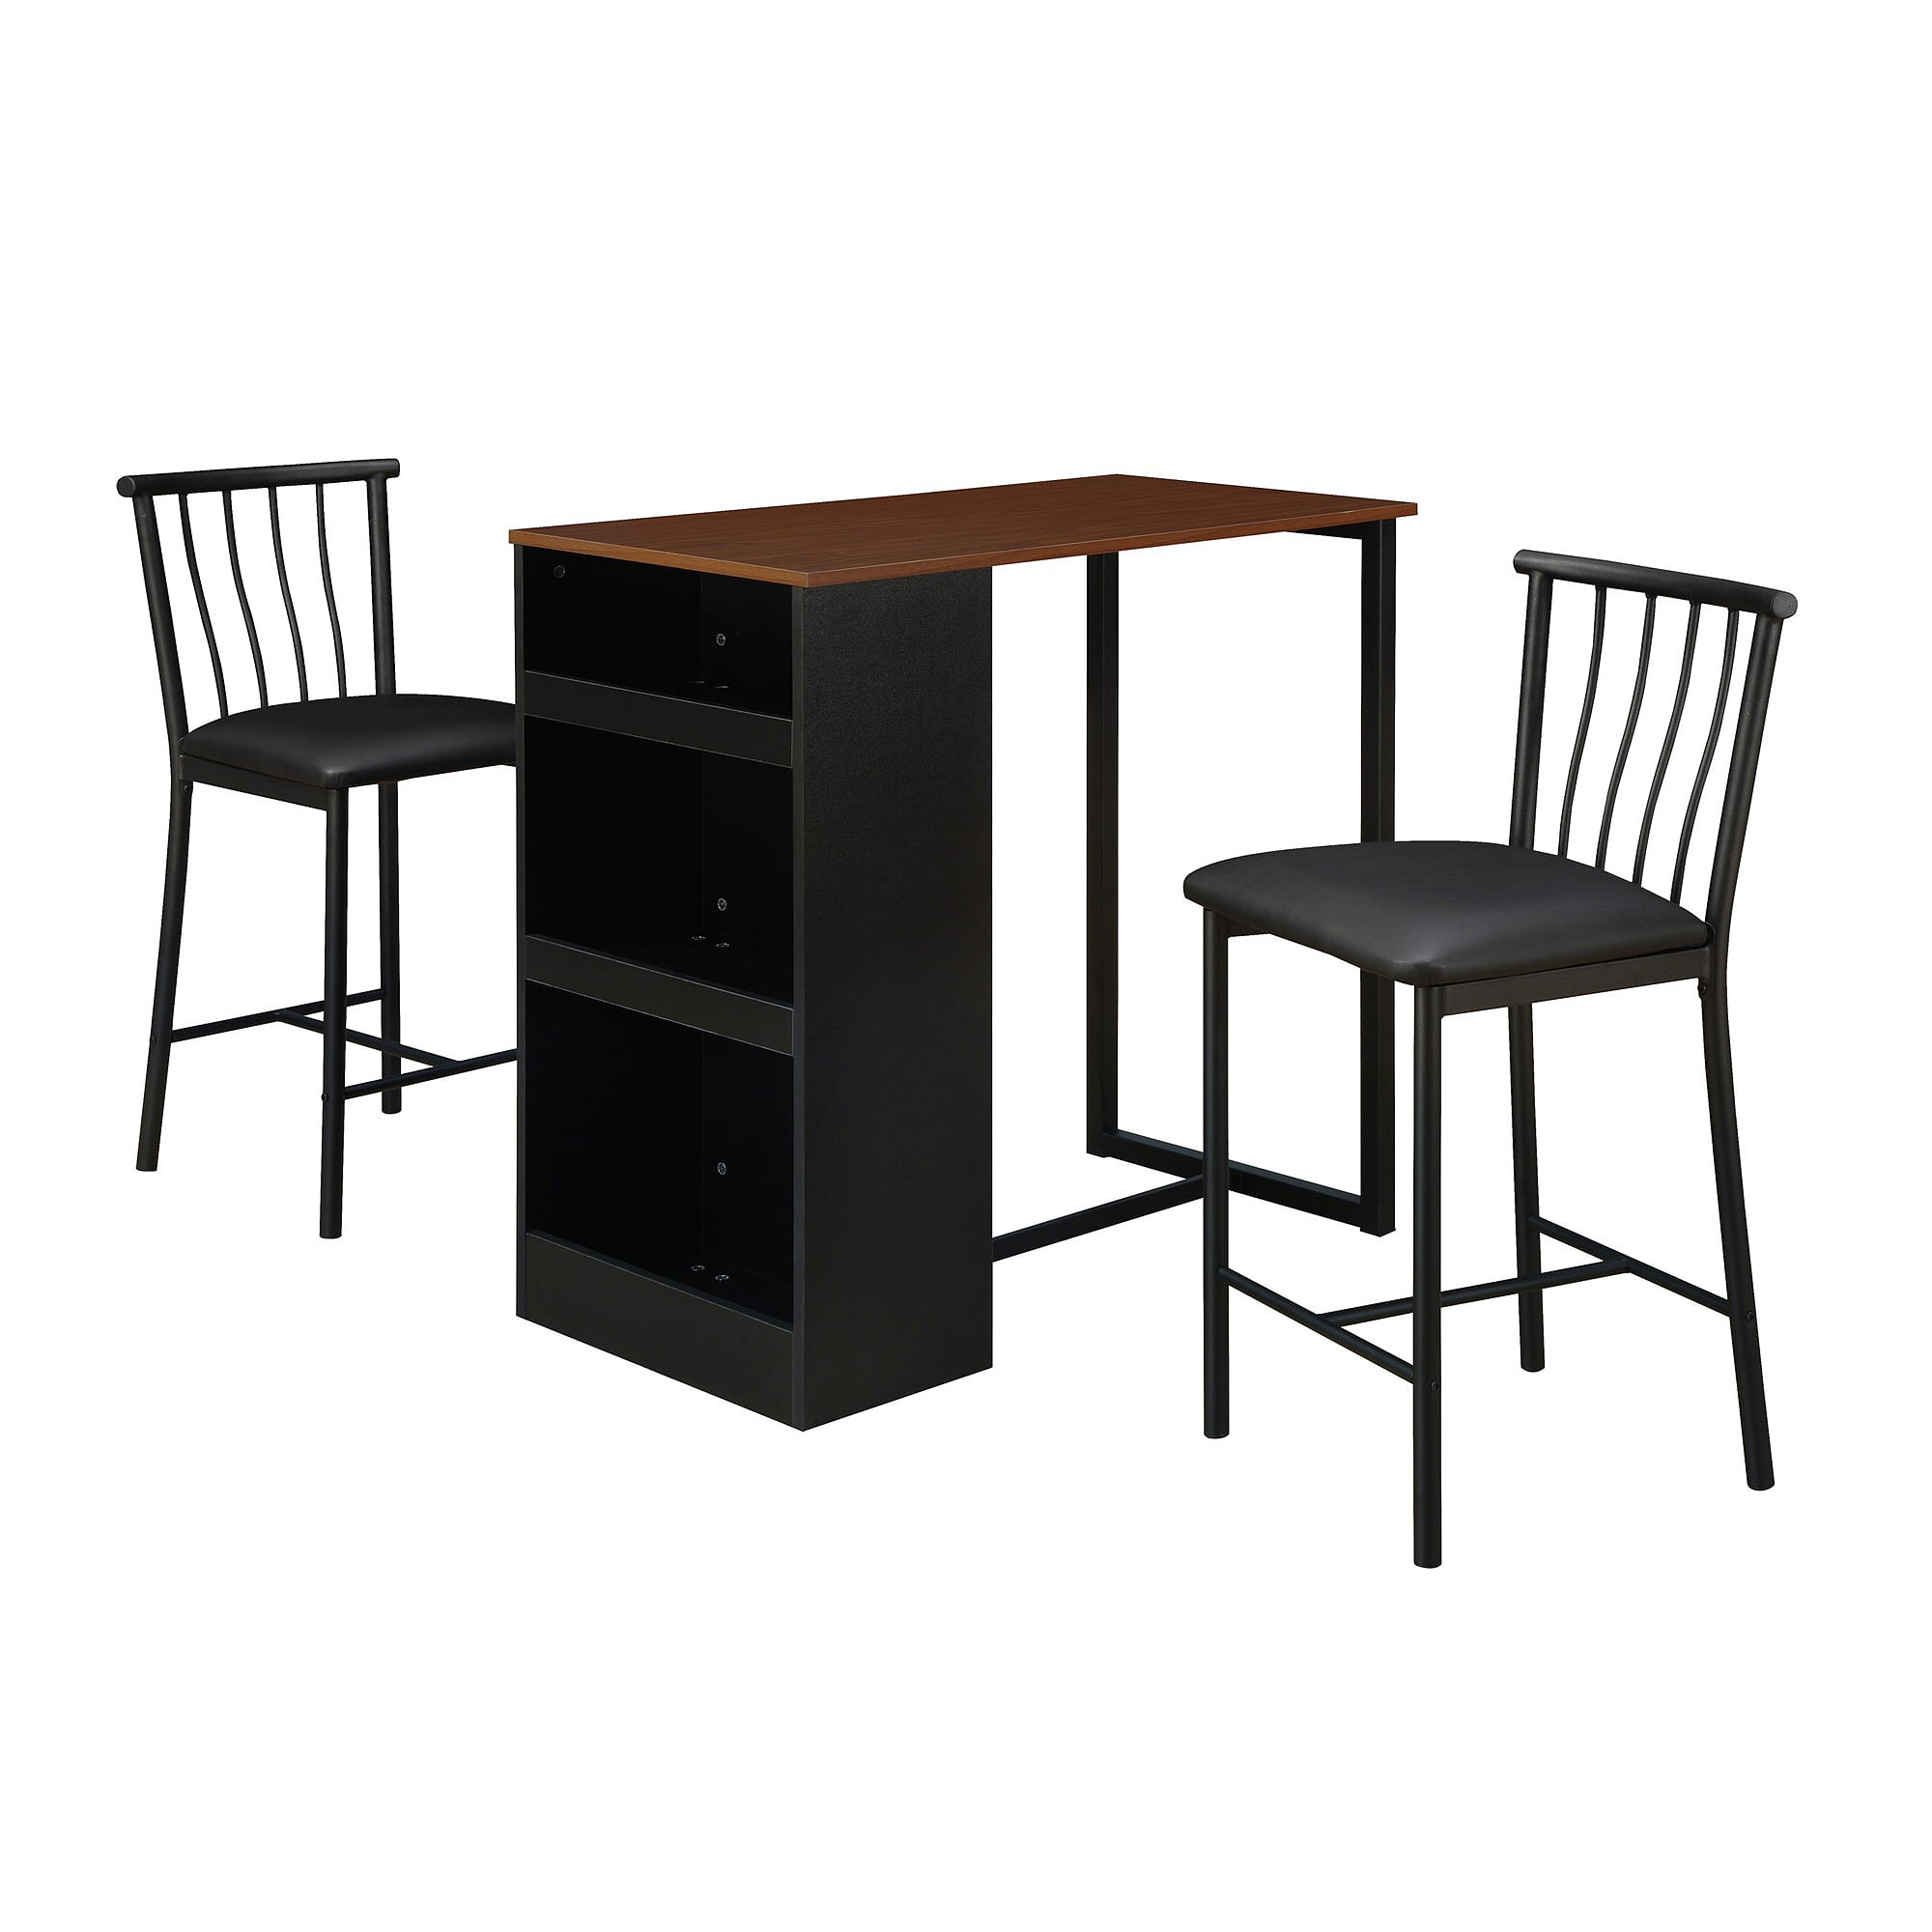 Elegant Bar Table and Chairs Set